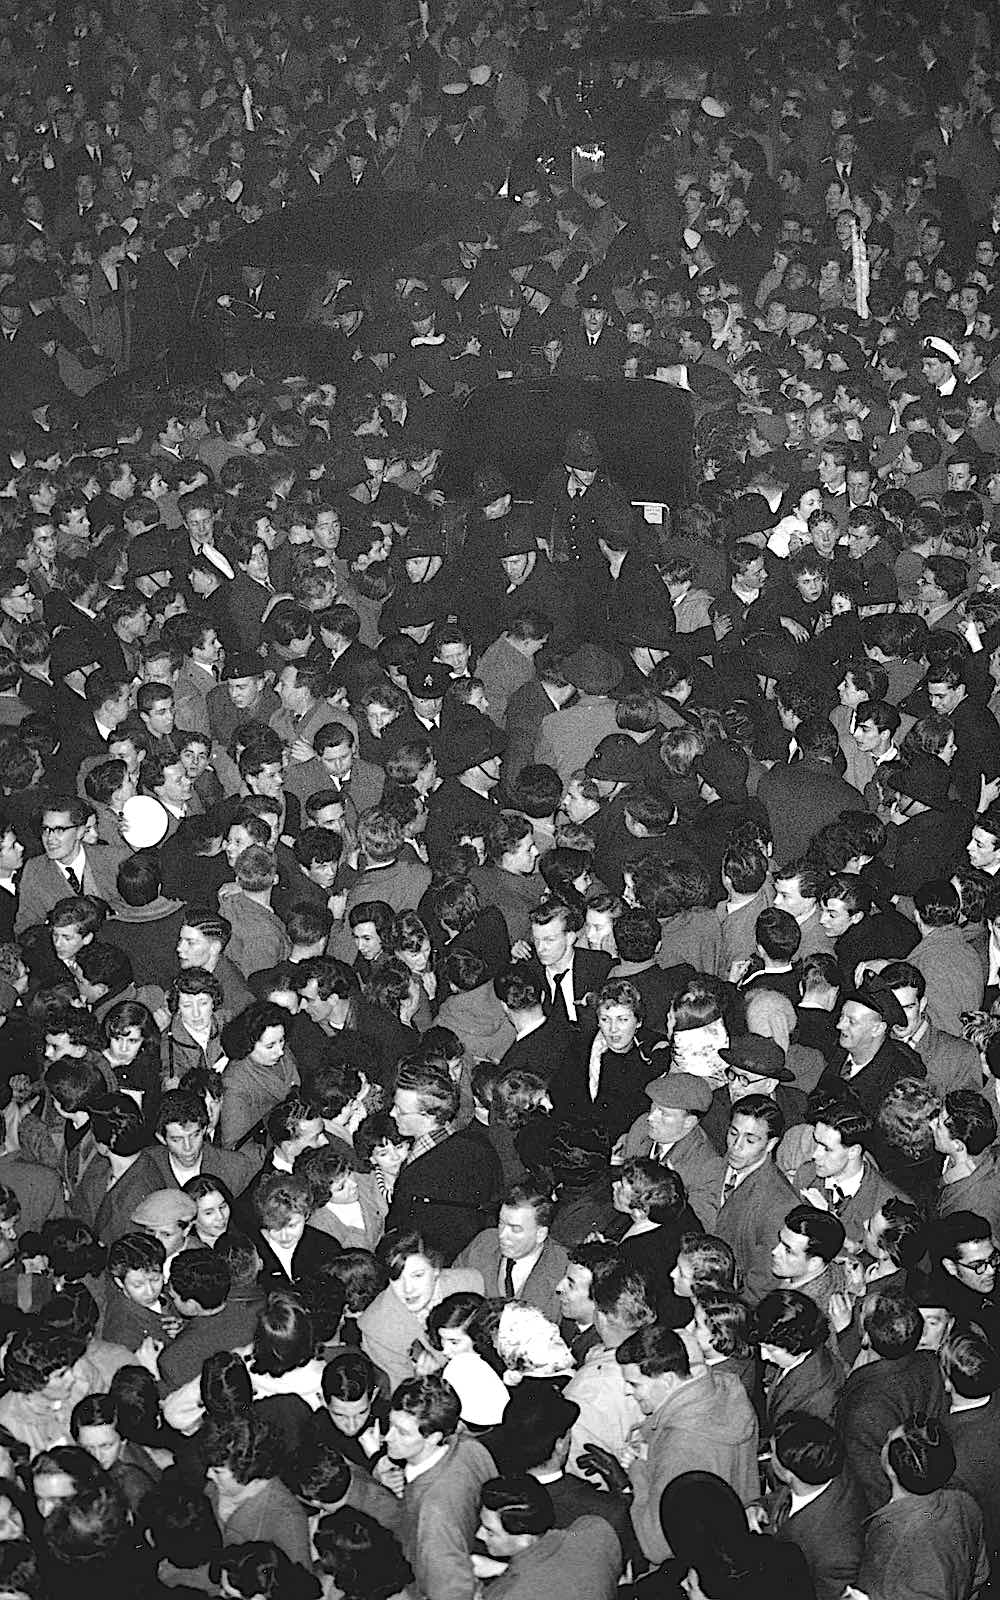 looking down on a crowd of people at night, 1960s?